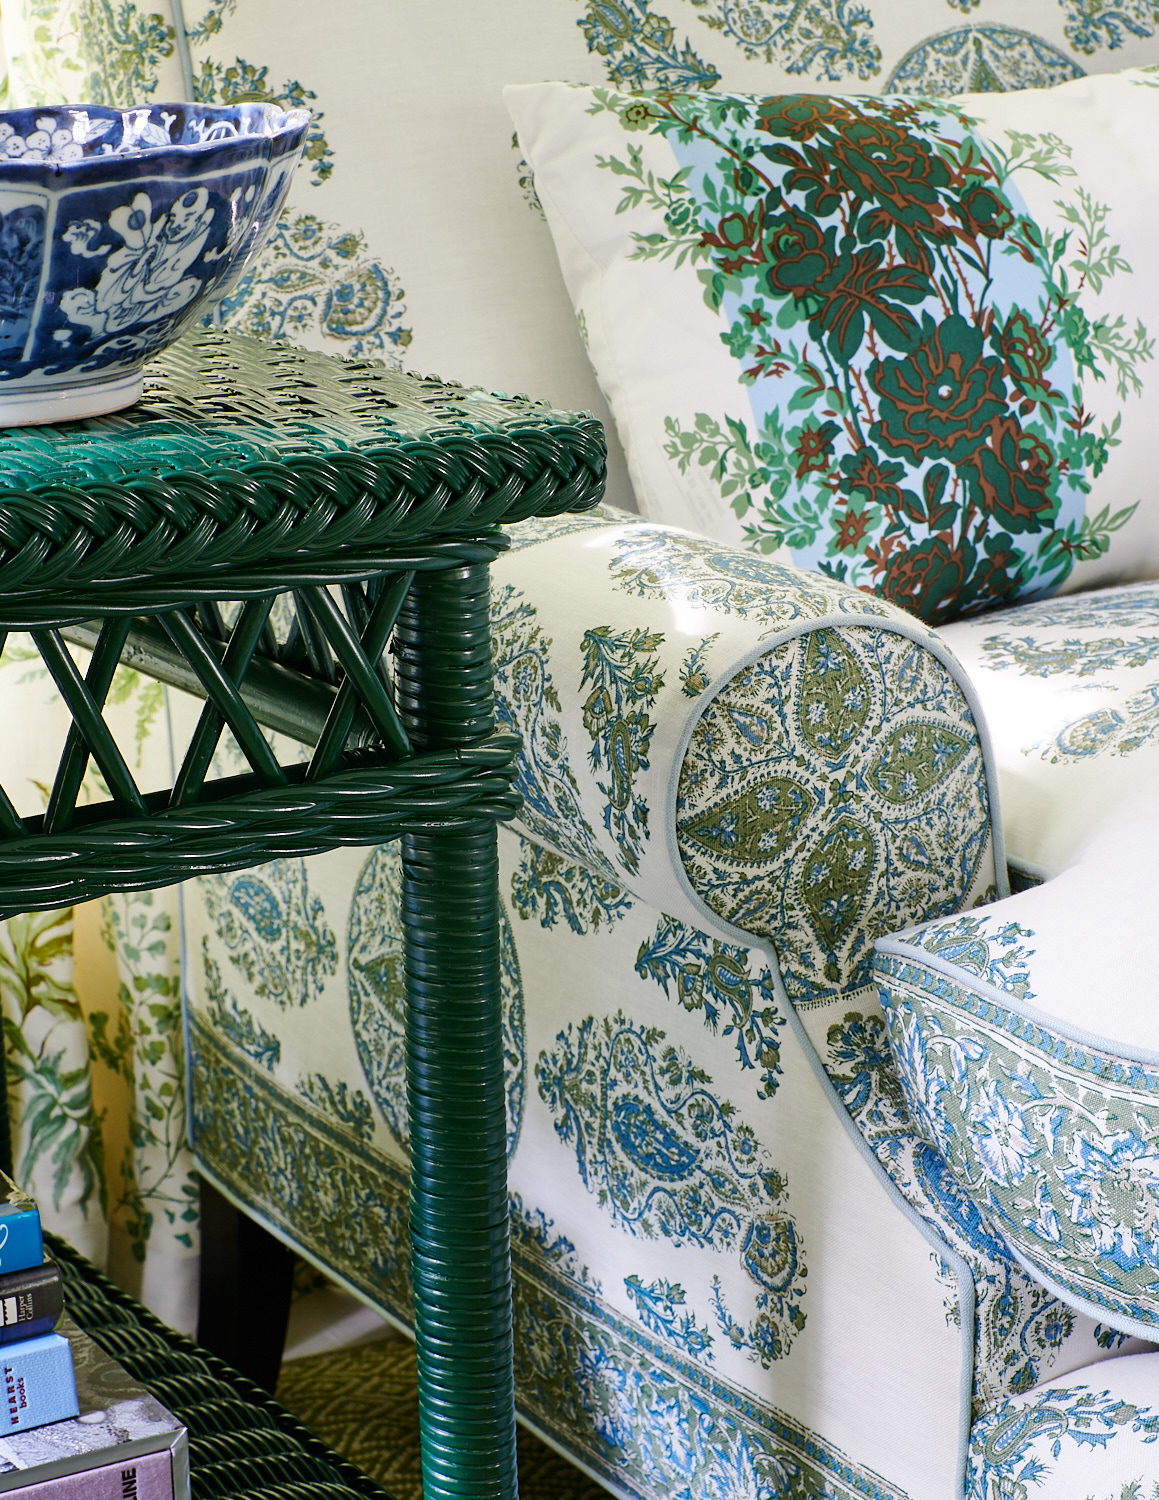 Detail on upholstered chair with trim and kidney pillow